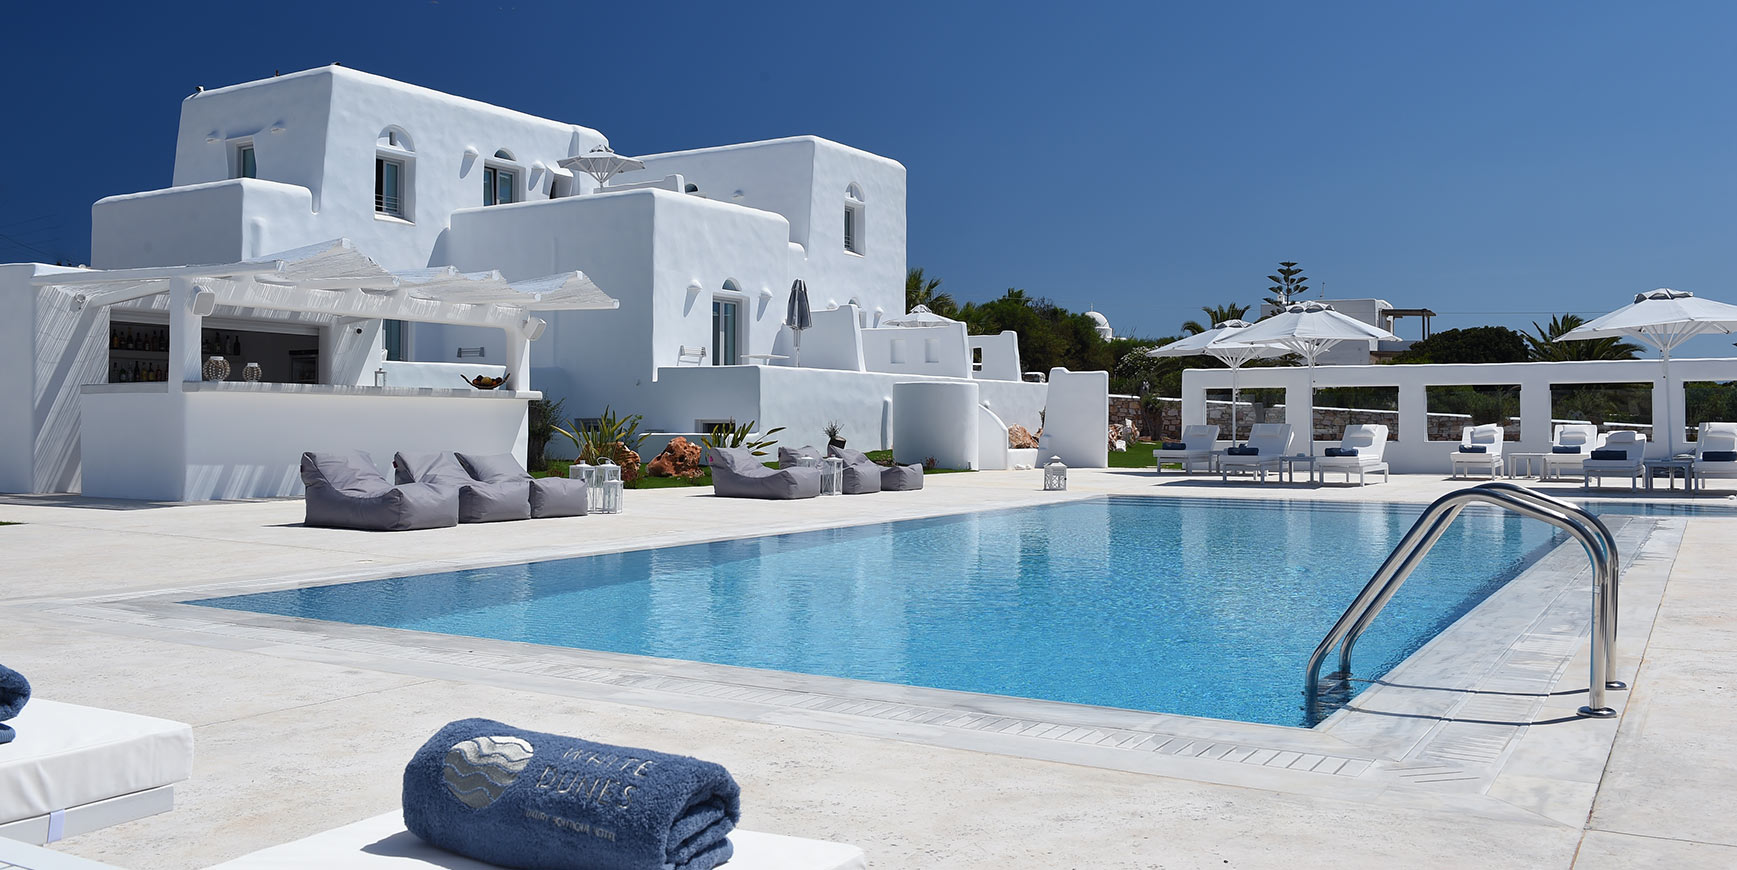 Seaside hotel White Dunes offers a really comfortable and convenient stay in some of the most amazing suites in Paros.